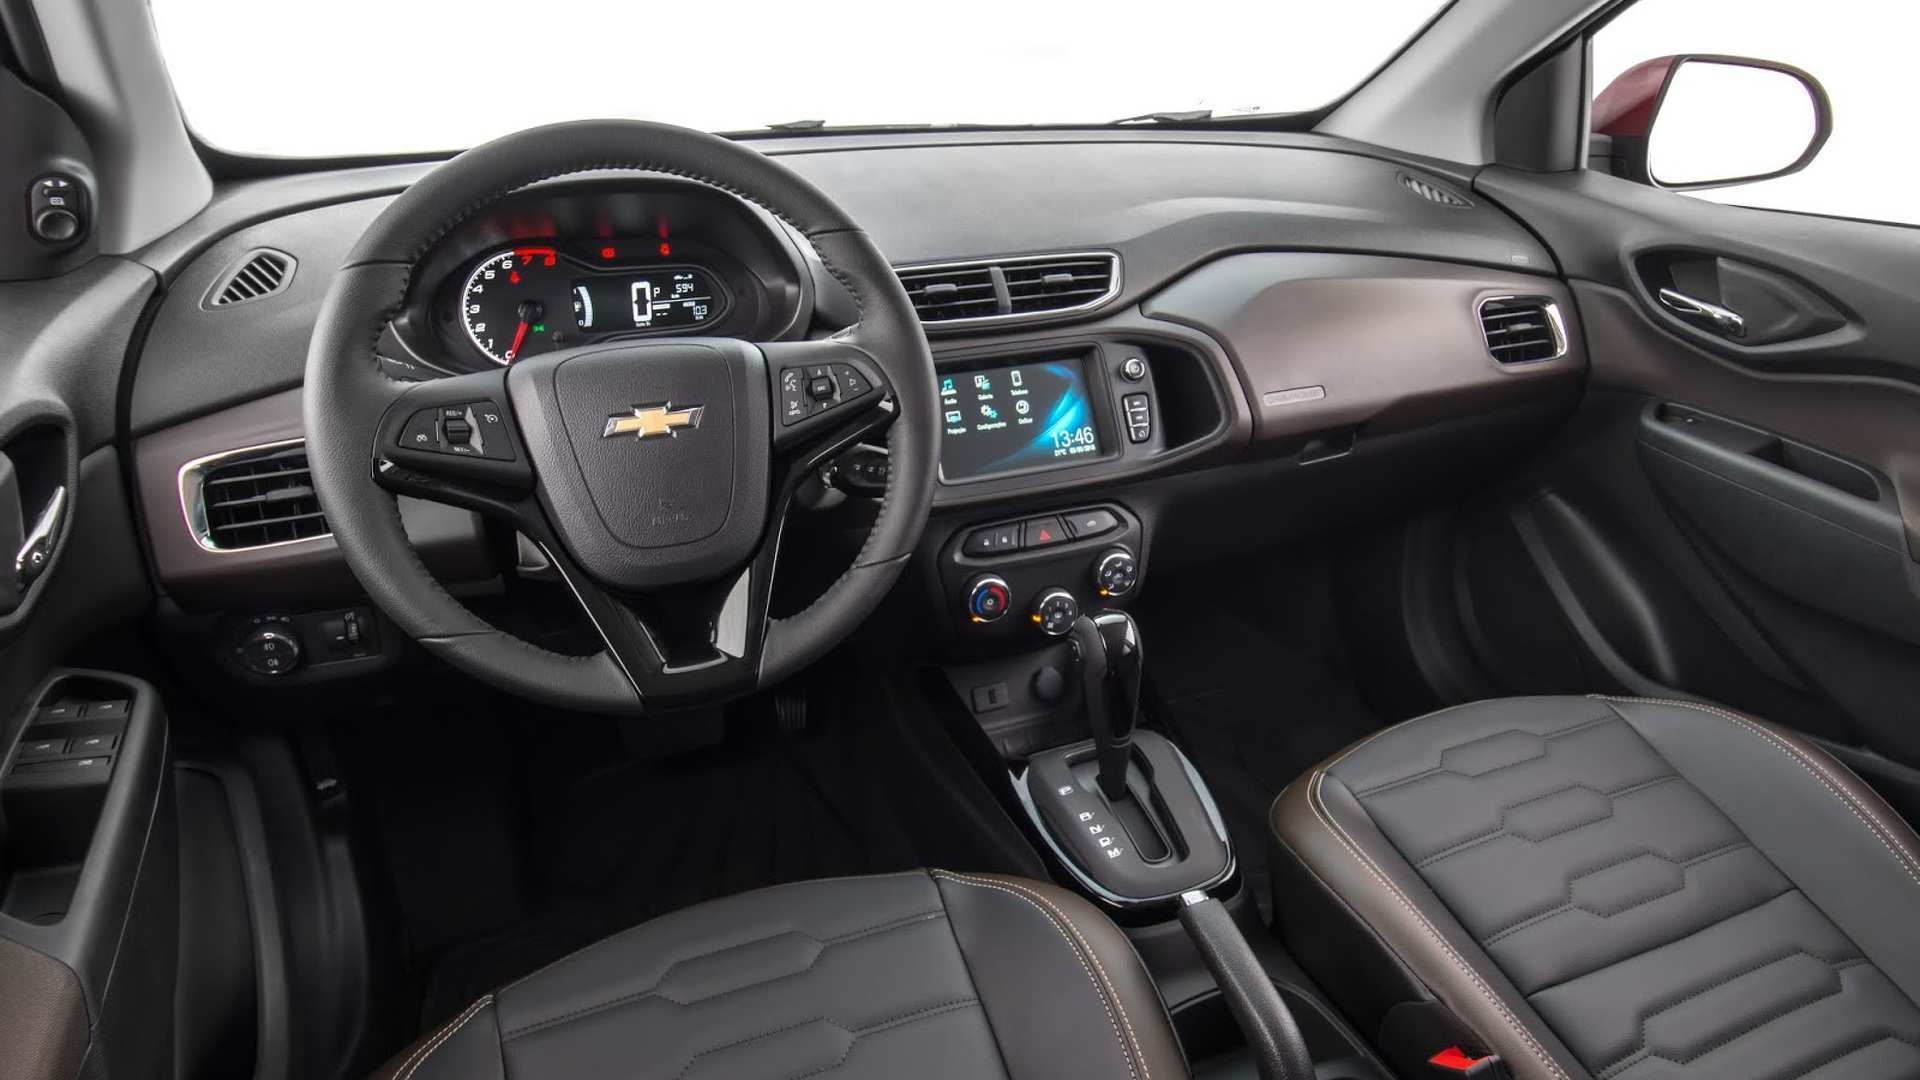 33 All New Chevrolet Onix 2019 Interior Exterior and Interior by Chevrolet Onix 2019 Interior